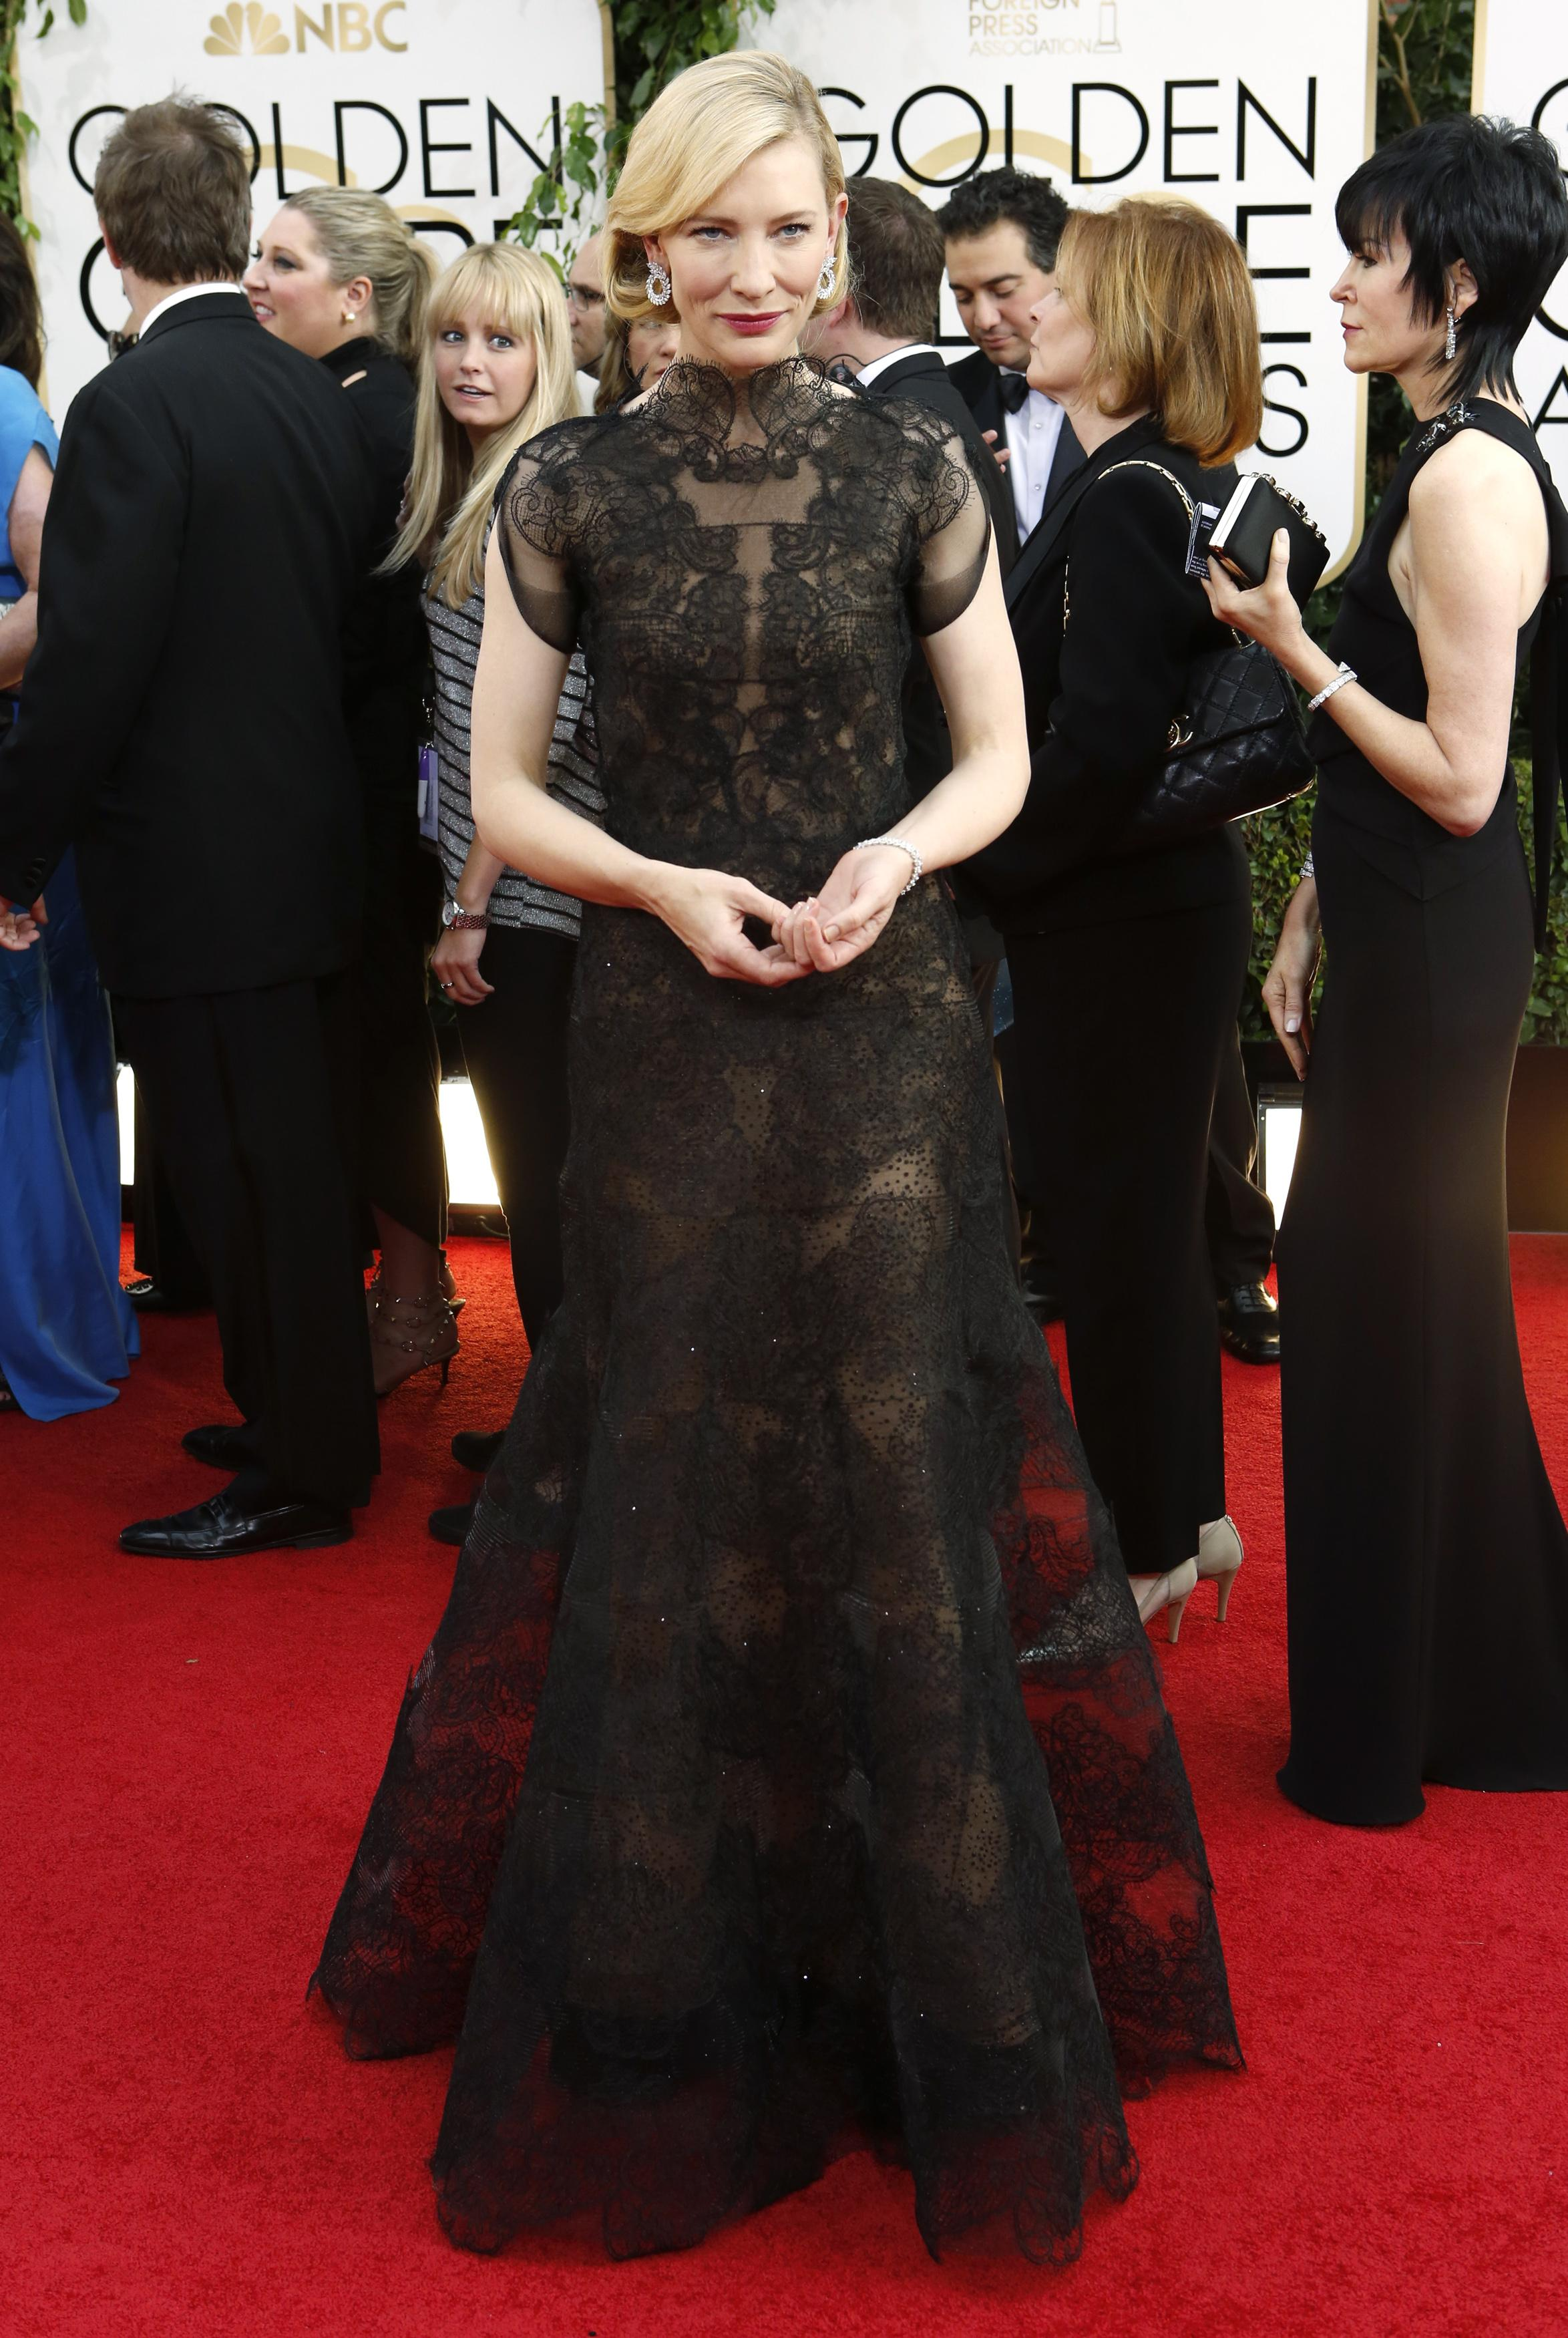 Golden Globes 2014 Red Carpet Recap